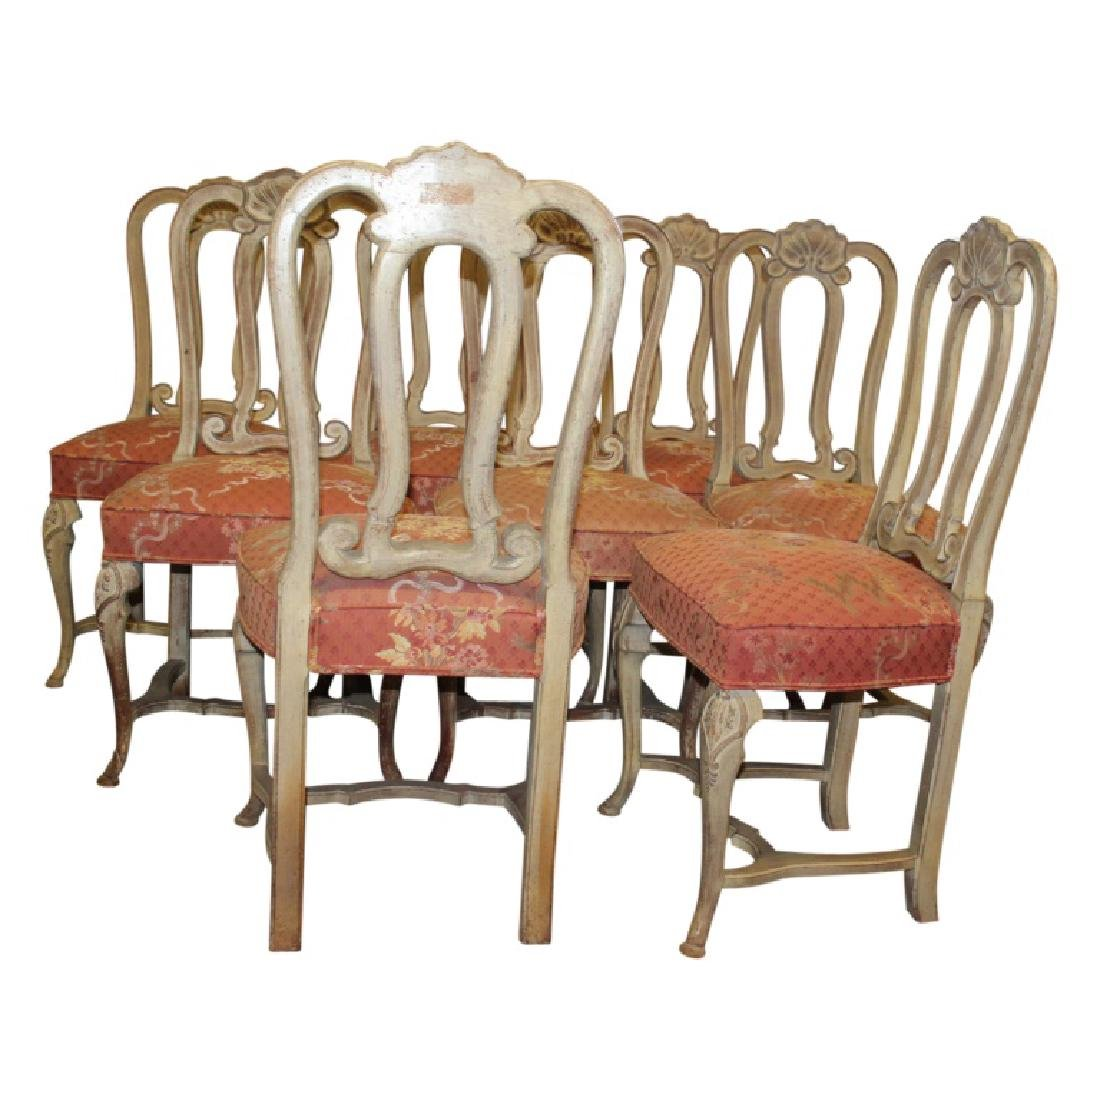 French Upholstered Dining Chairs - 8PCS - 2